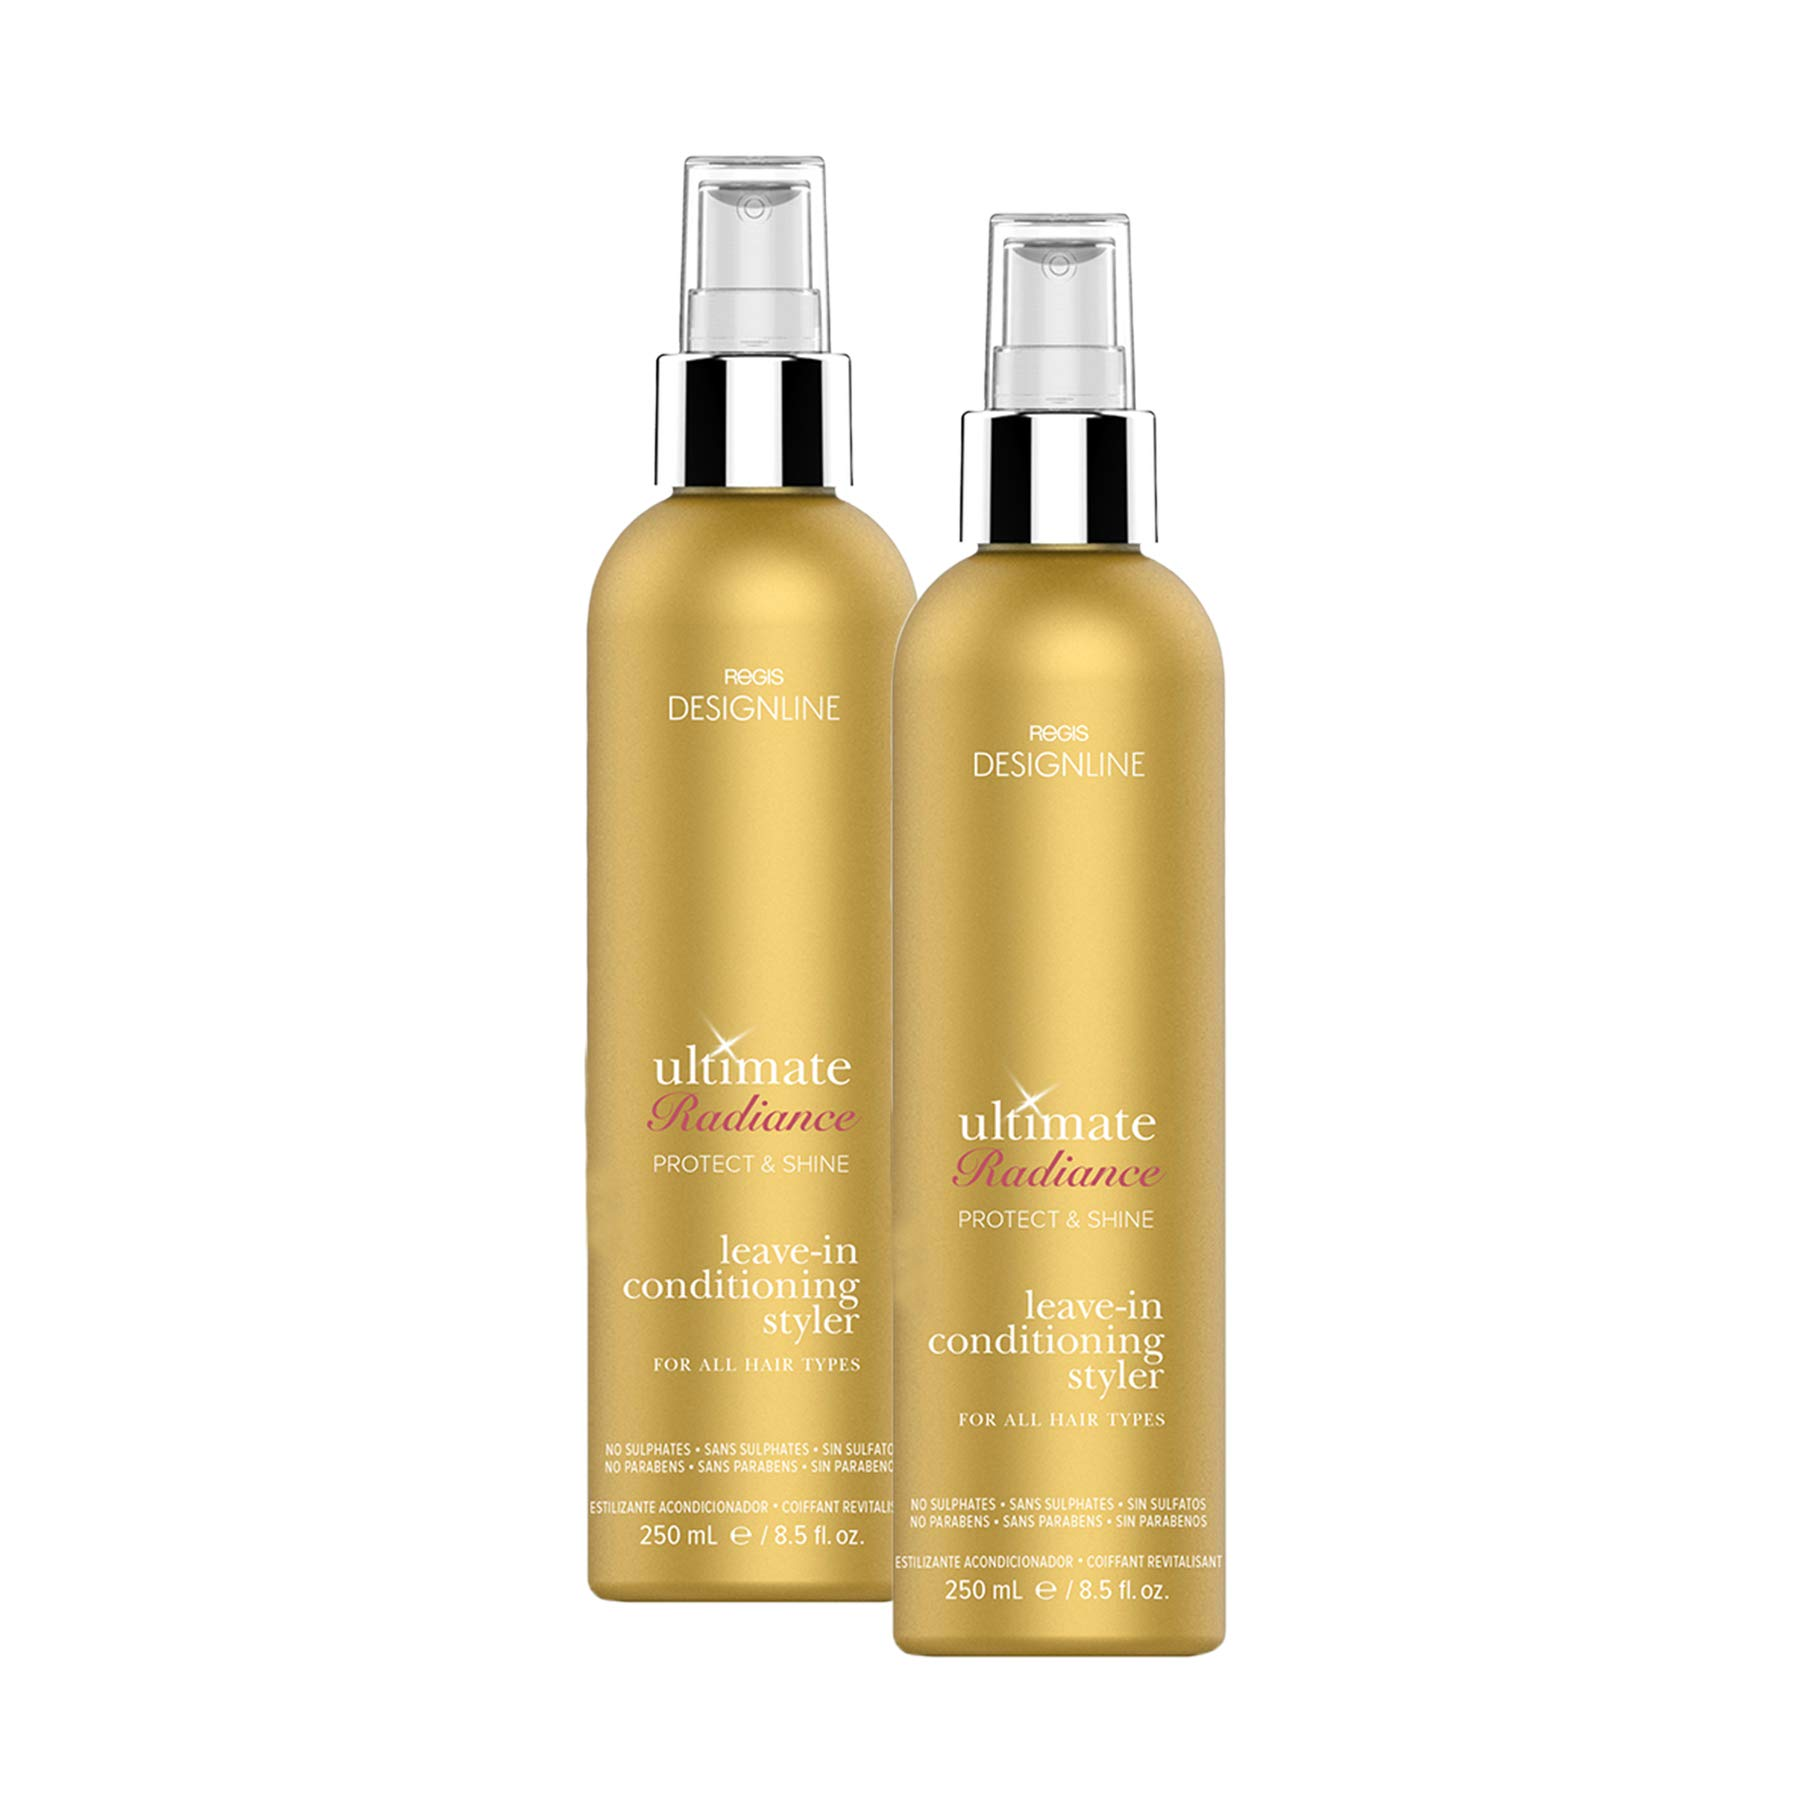 Ultimate Radiance Leave-In Conditioning Styler, 8.5 oz - Regis DESIGNLINE - Deep Conditioner Treatment that Reconstructs Damaged Hair and Repairs Split Ends (8.5 oz (2 pack)) by DESIGNLINE